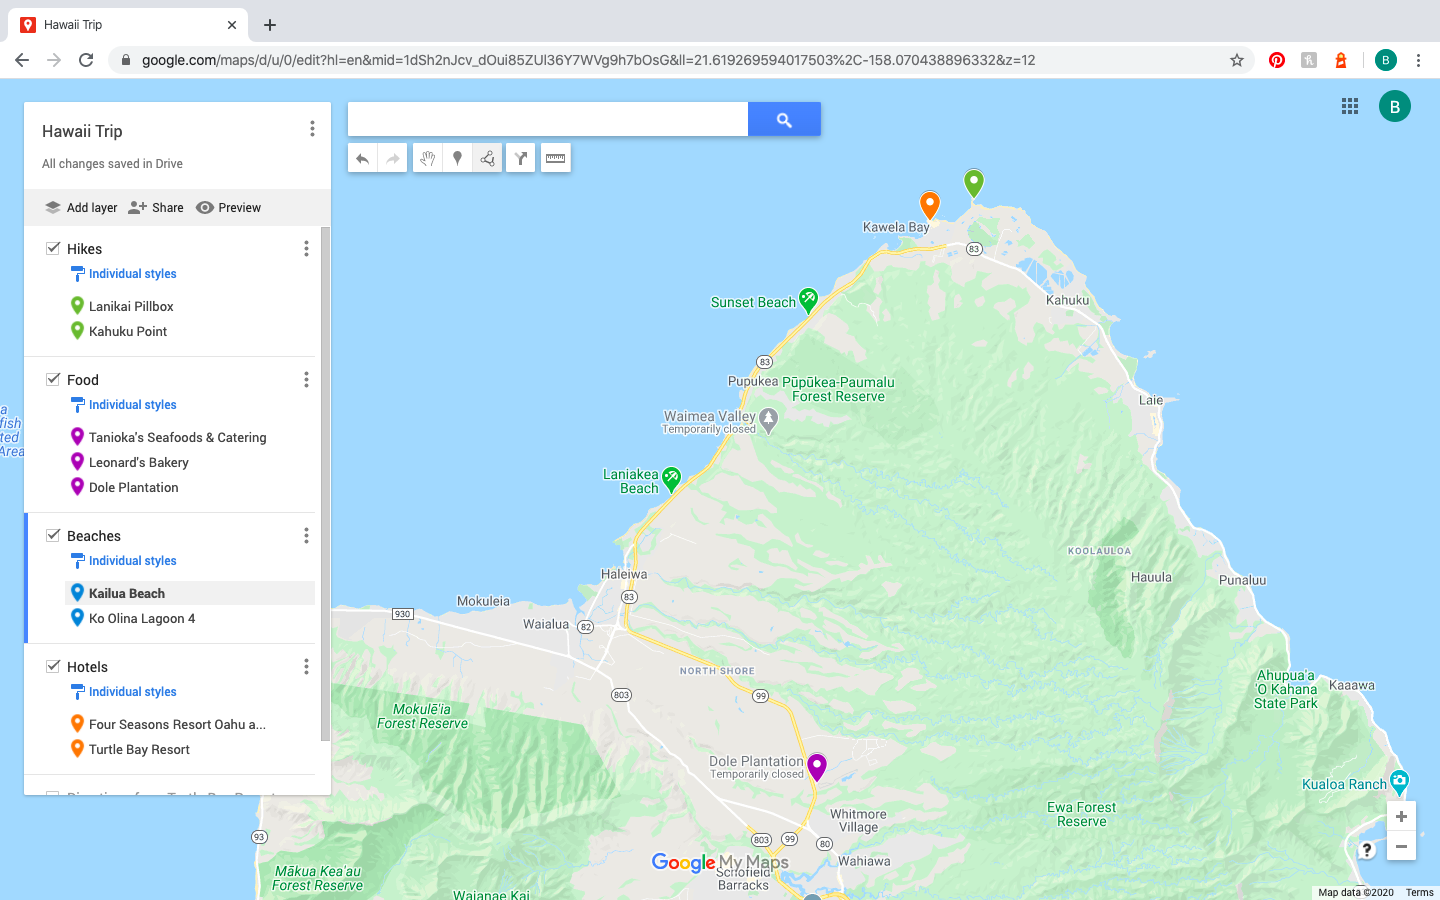 Google Map with three different color pins